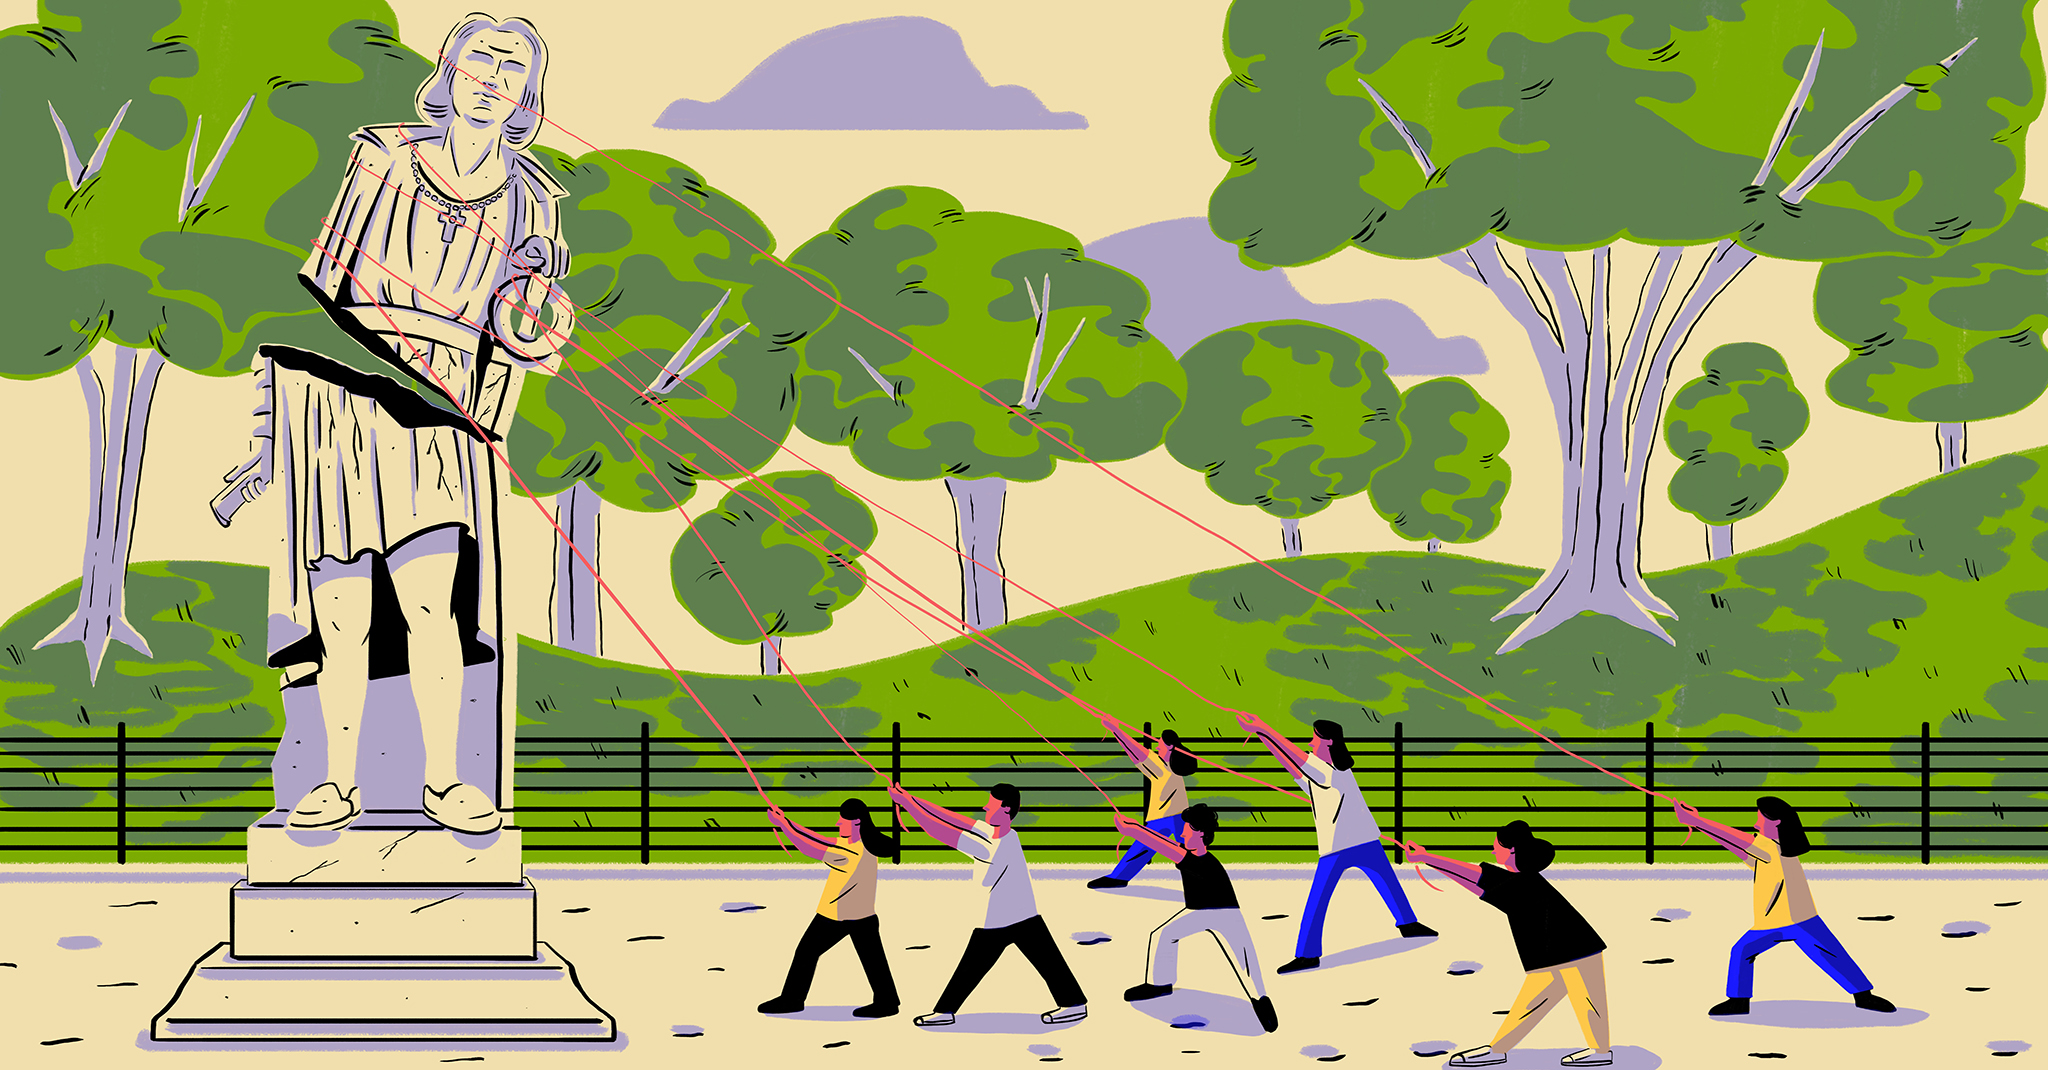 Decolonizing Columbus Day in the Americas